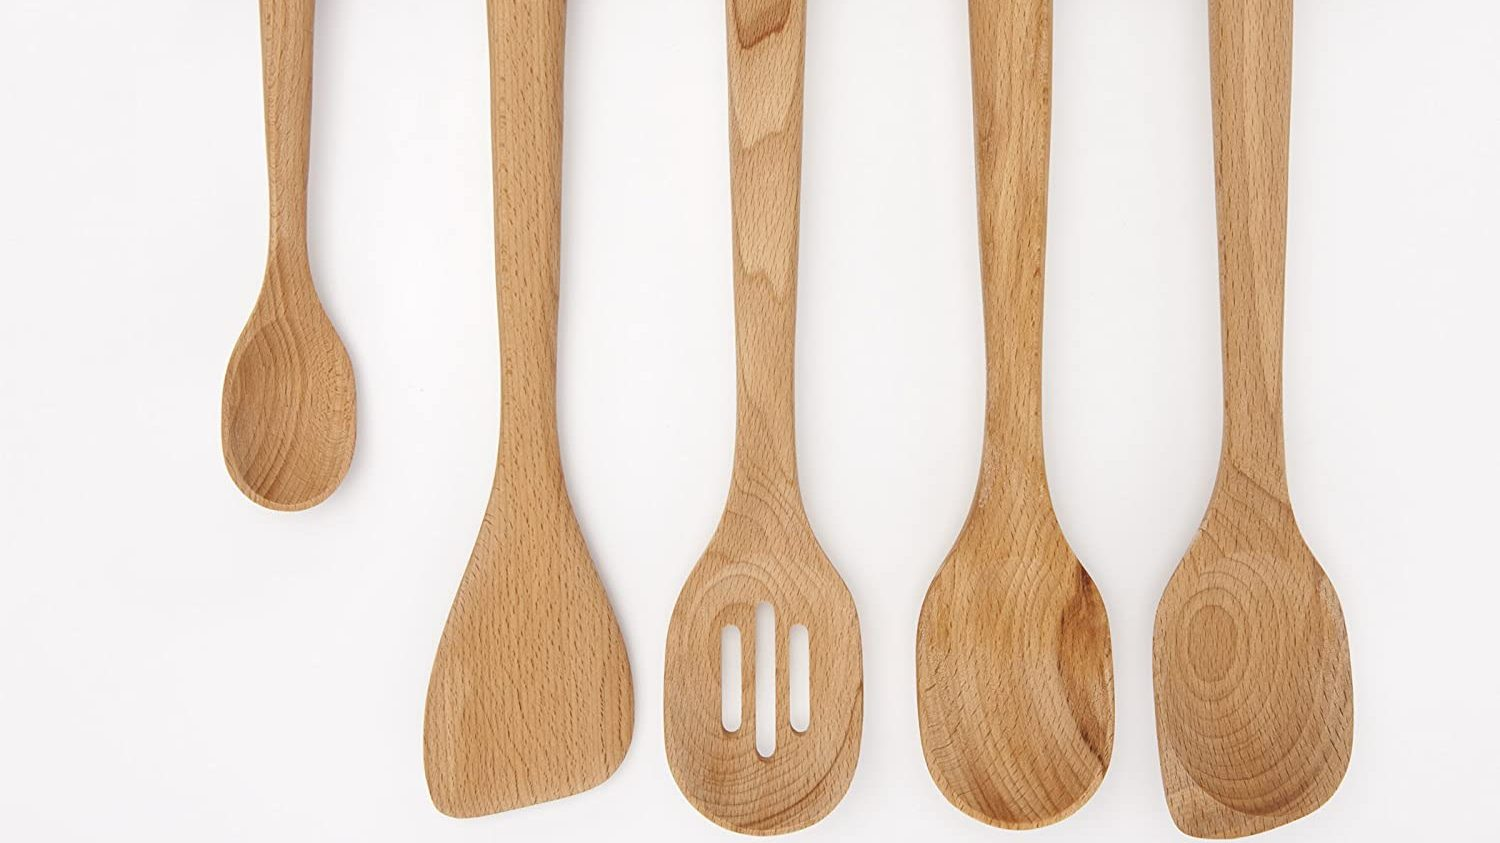 Best Wooden Slotted Spoon